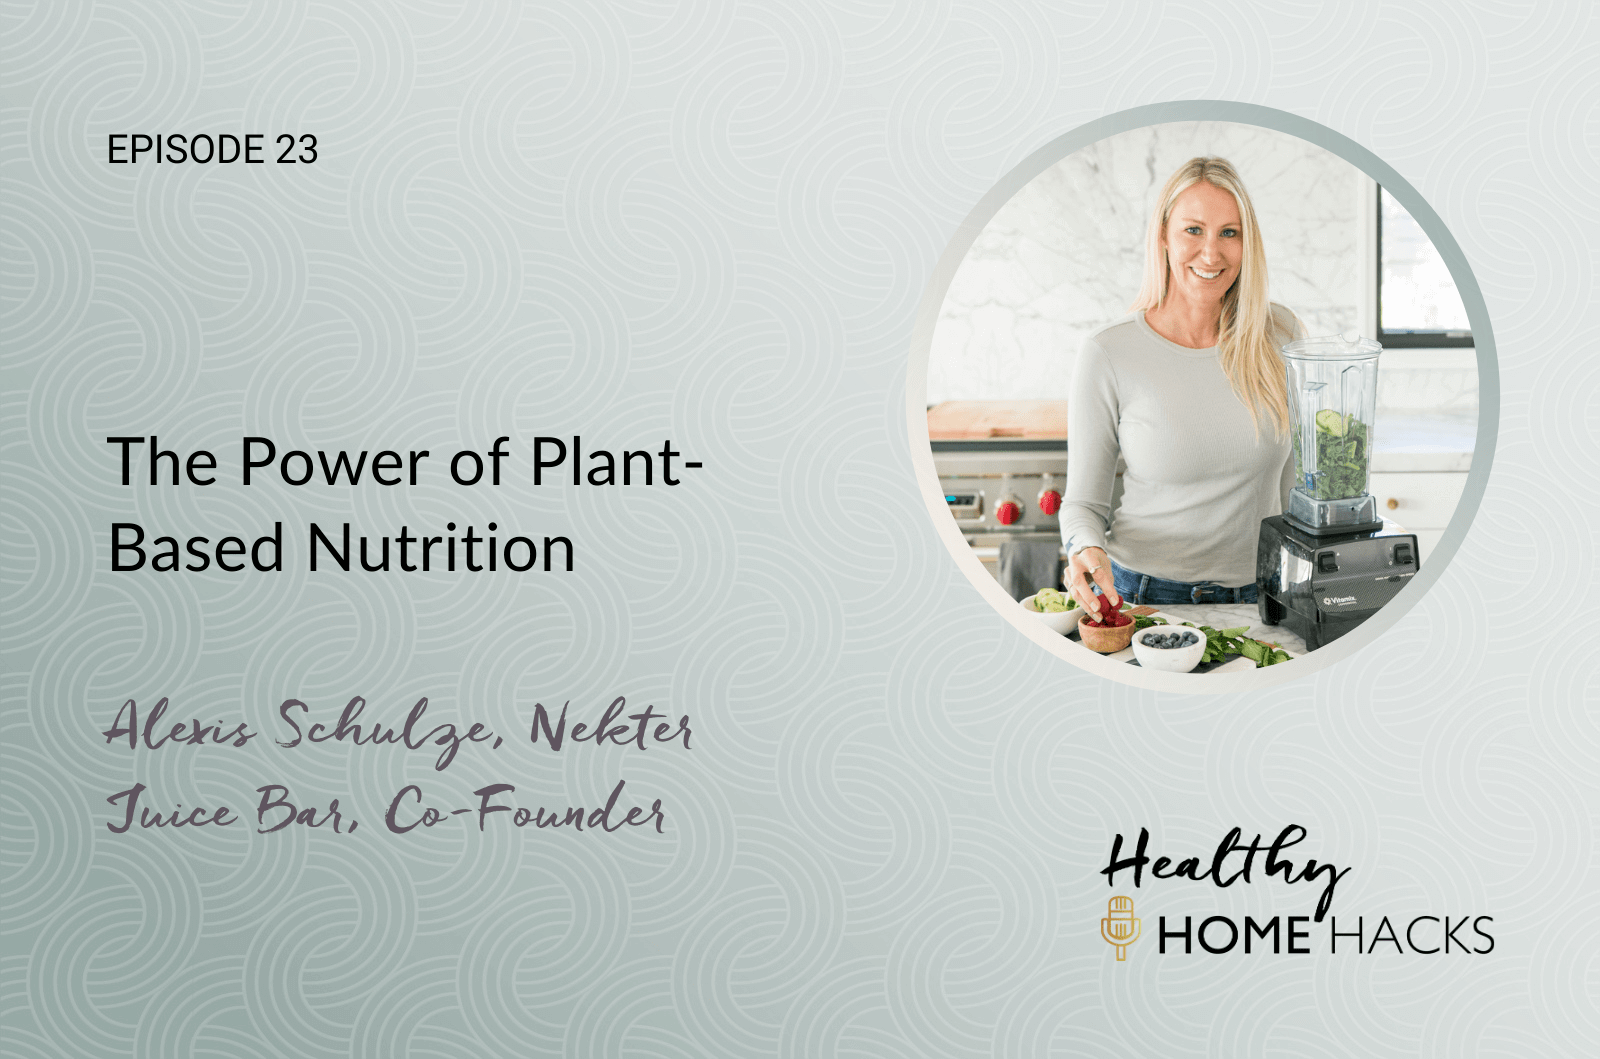 The Power of Plant-Based Nutrition